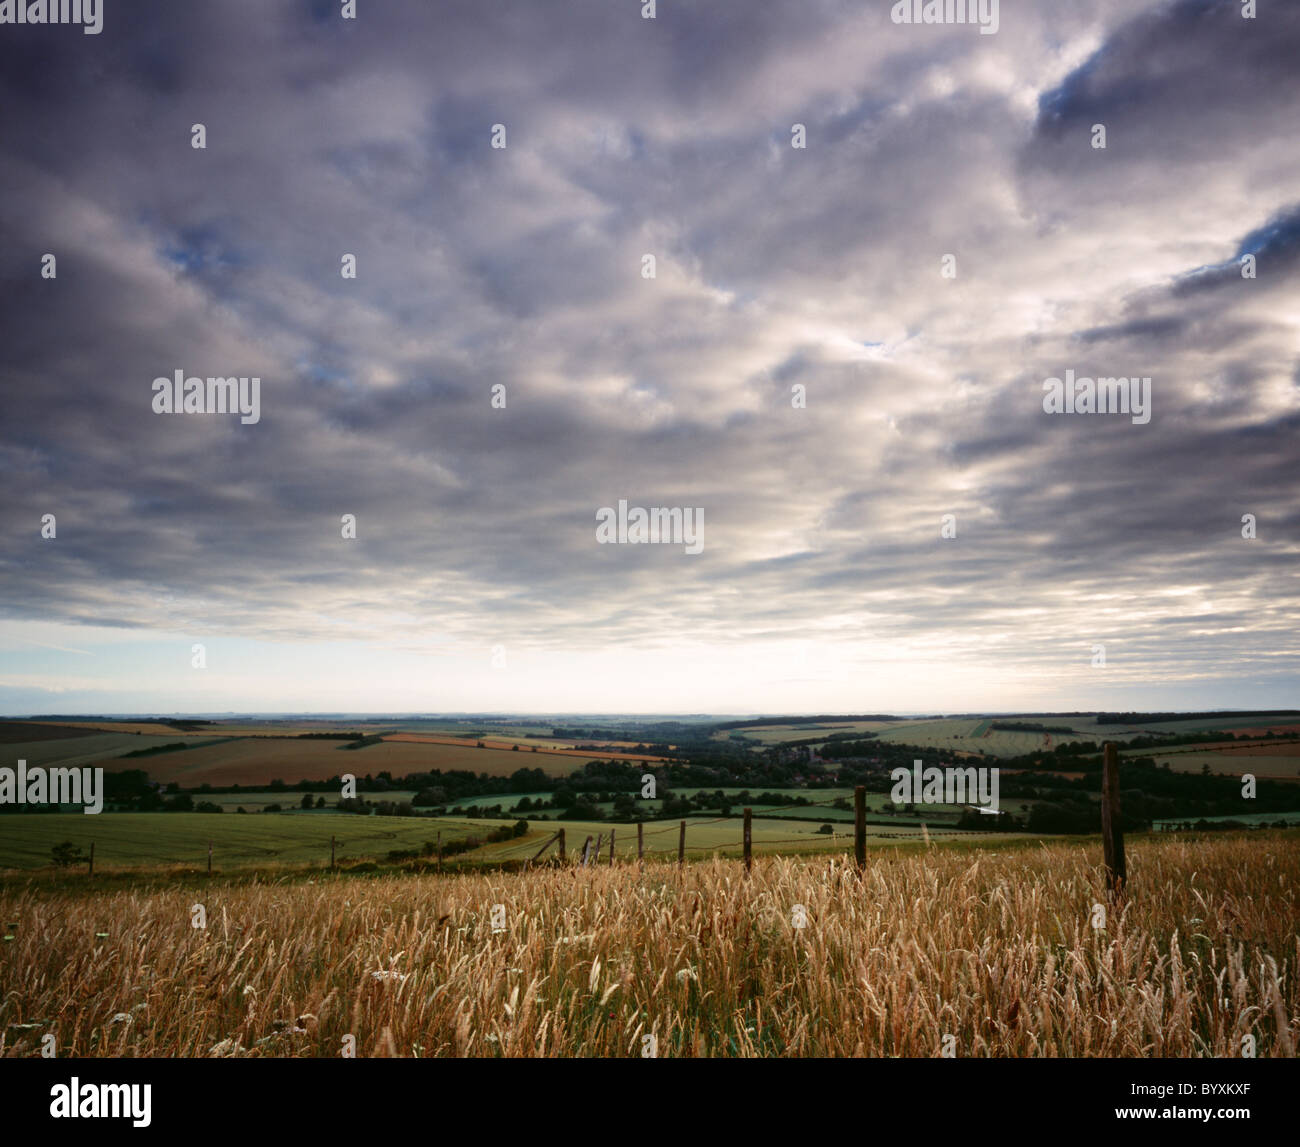 A view of the Wylye Valley in Wiltshire, England taken near the village of Stapleford. Stock Photo